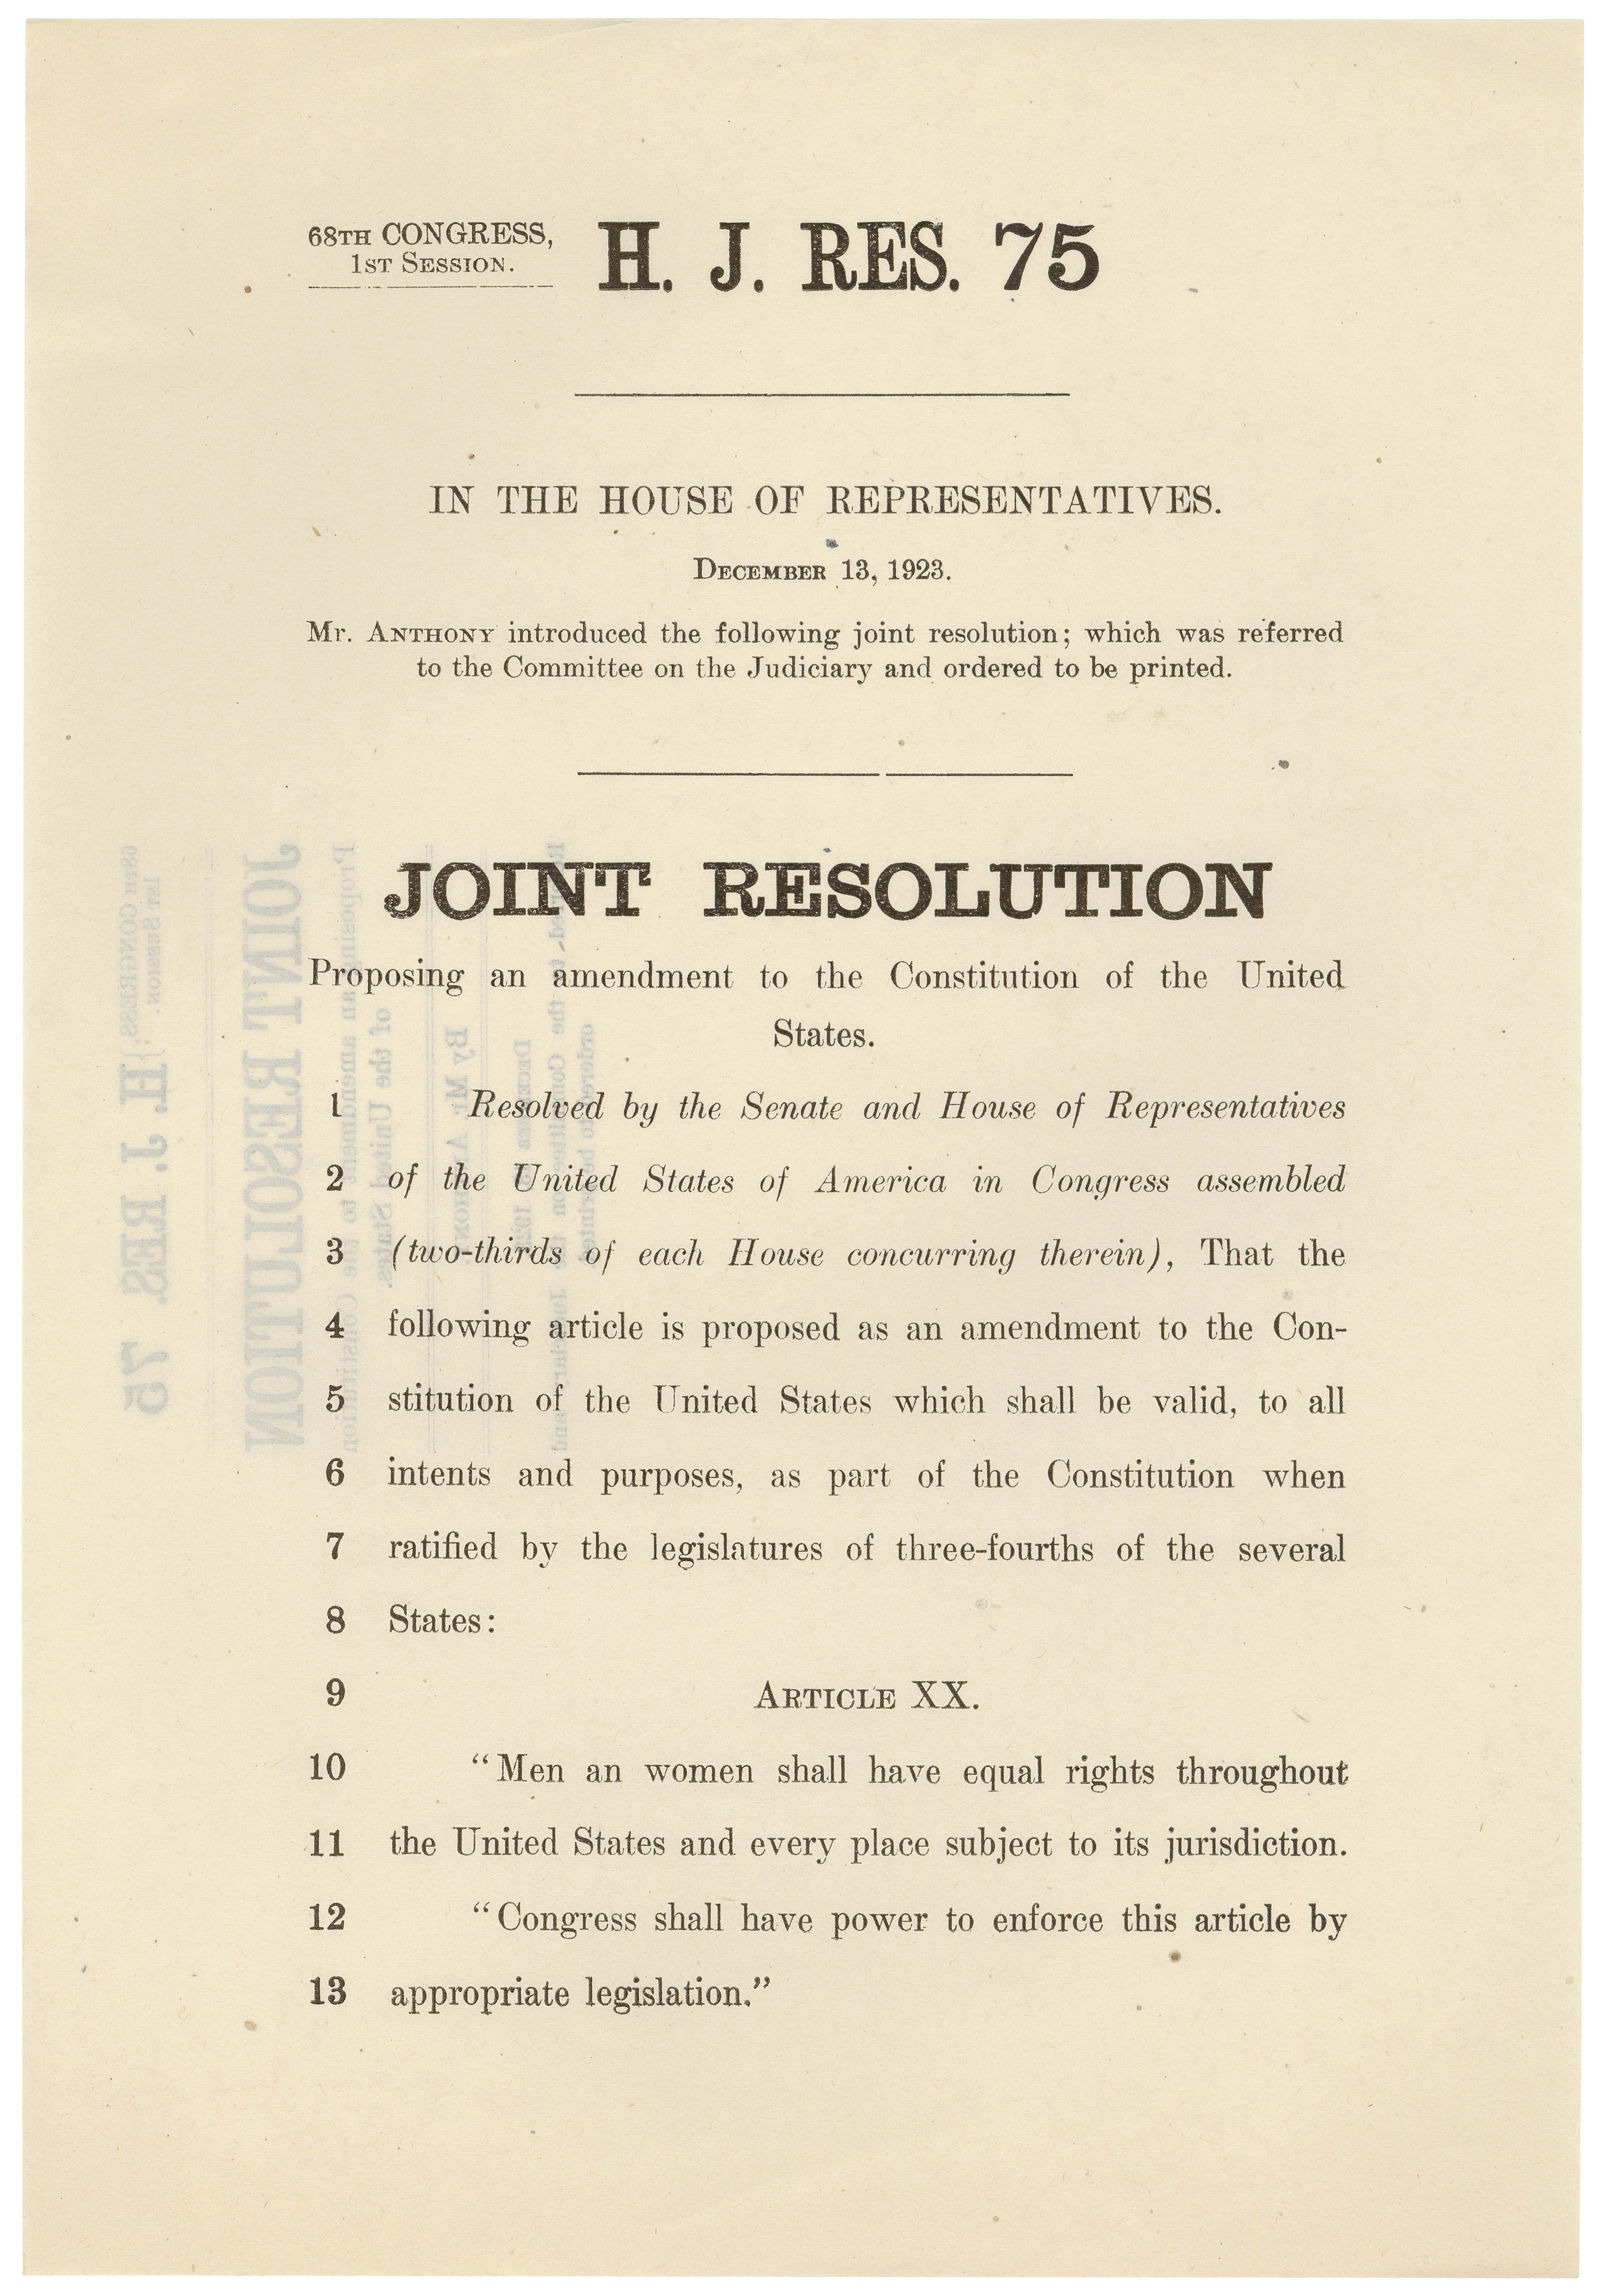 H.J. Res. 75, Proposing an Equal Rights Amendment to the Constitution, December 13, 1923. Records of the U.S. House of Representatives